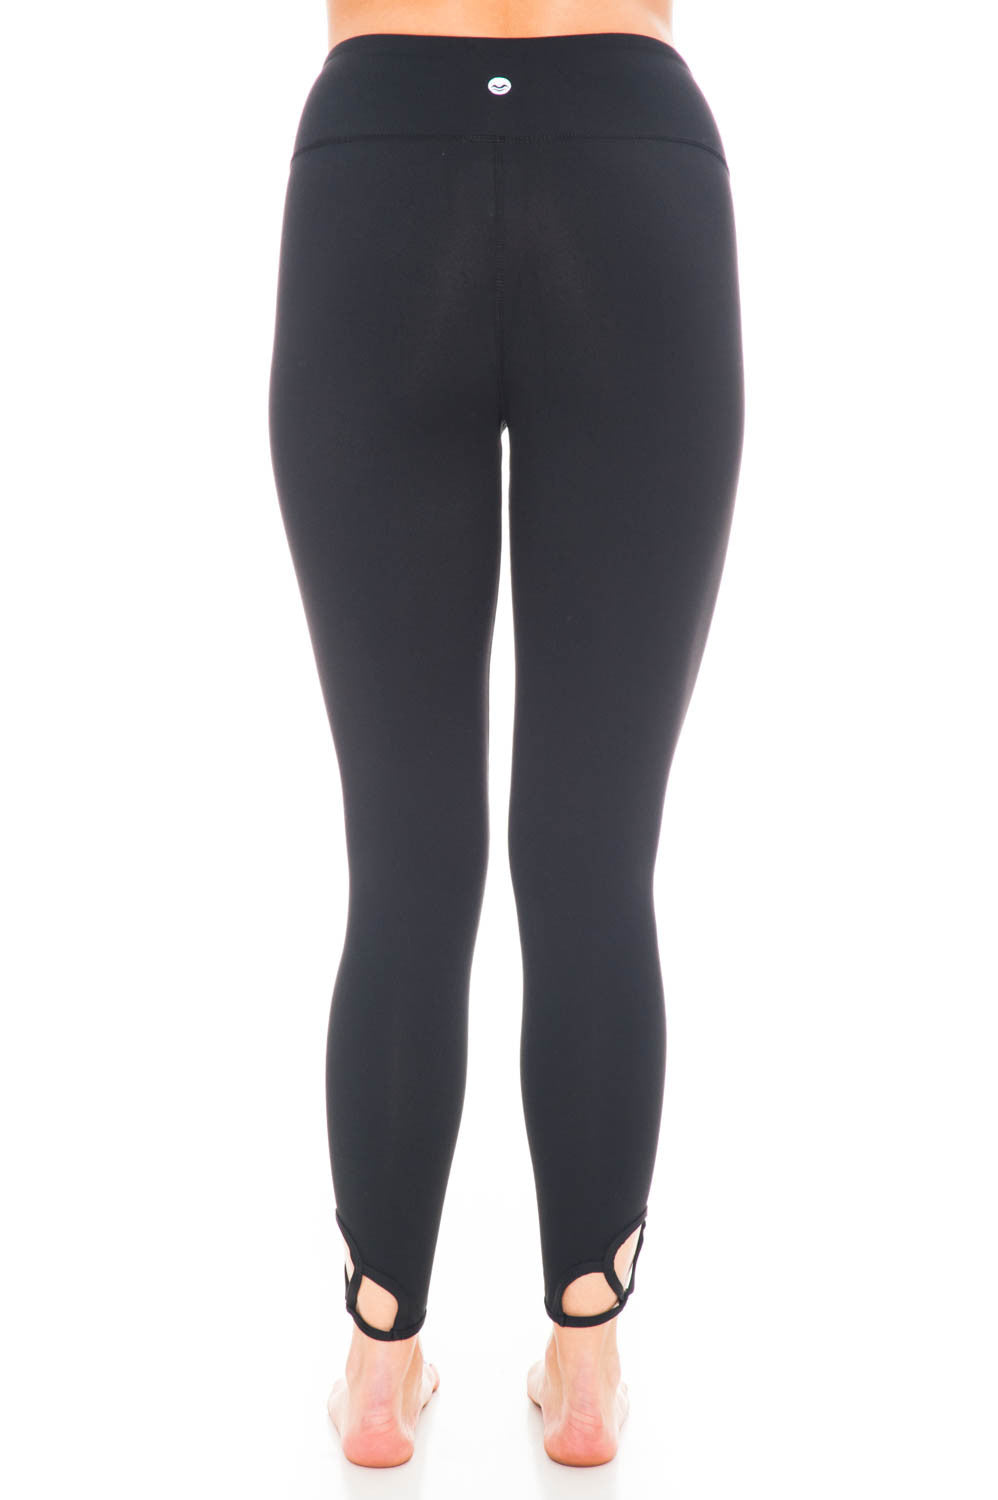 Legging - Criss Cross Side Detail Yoga Pant by Motion by Coalition